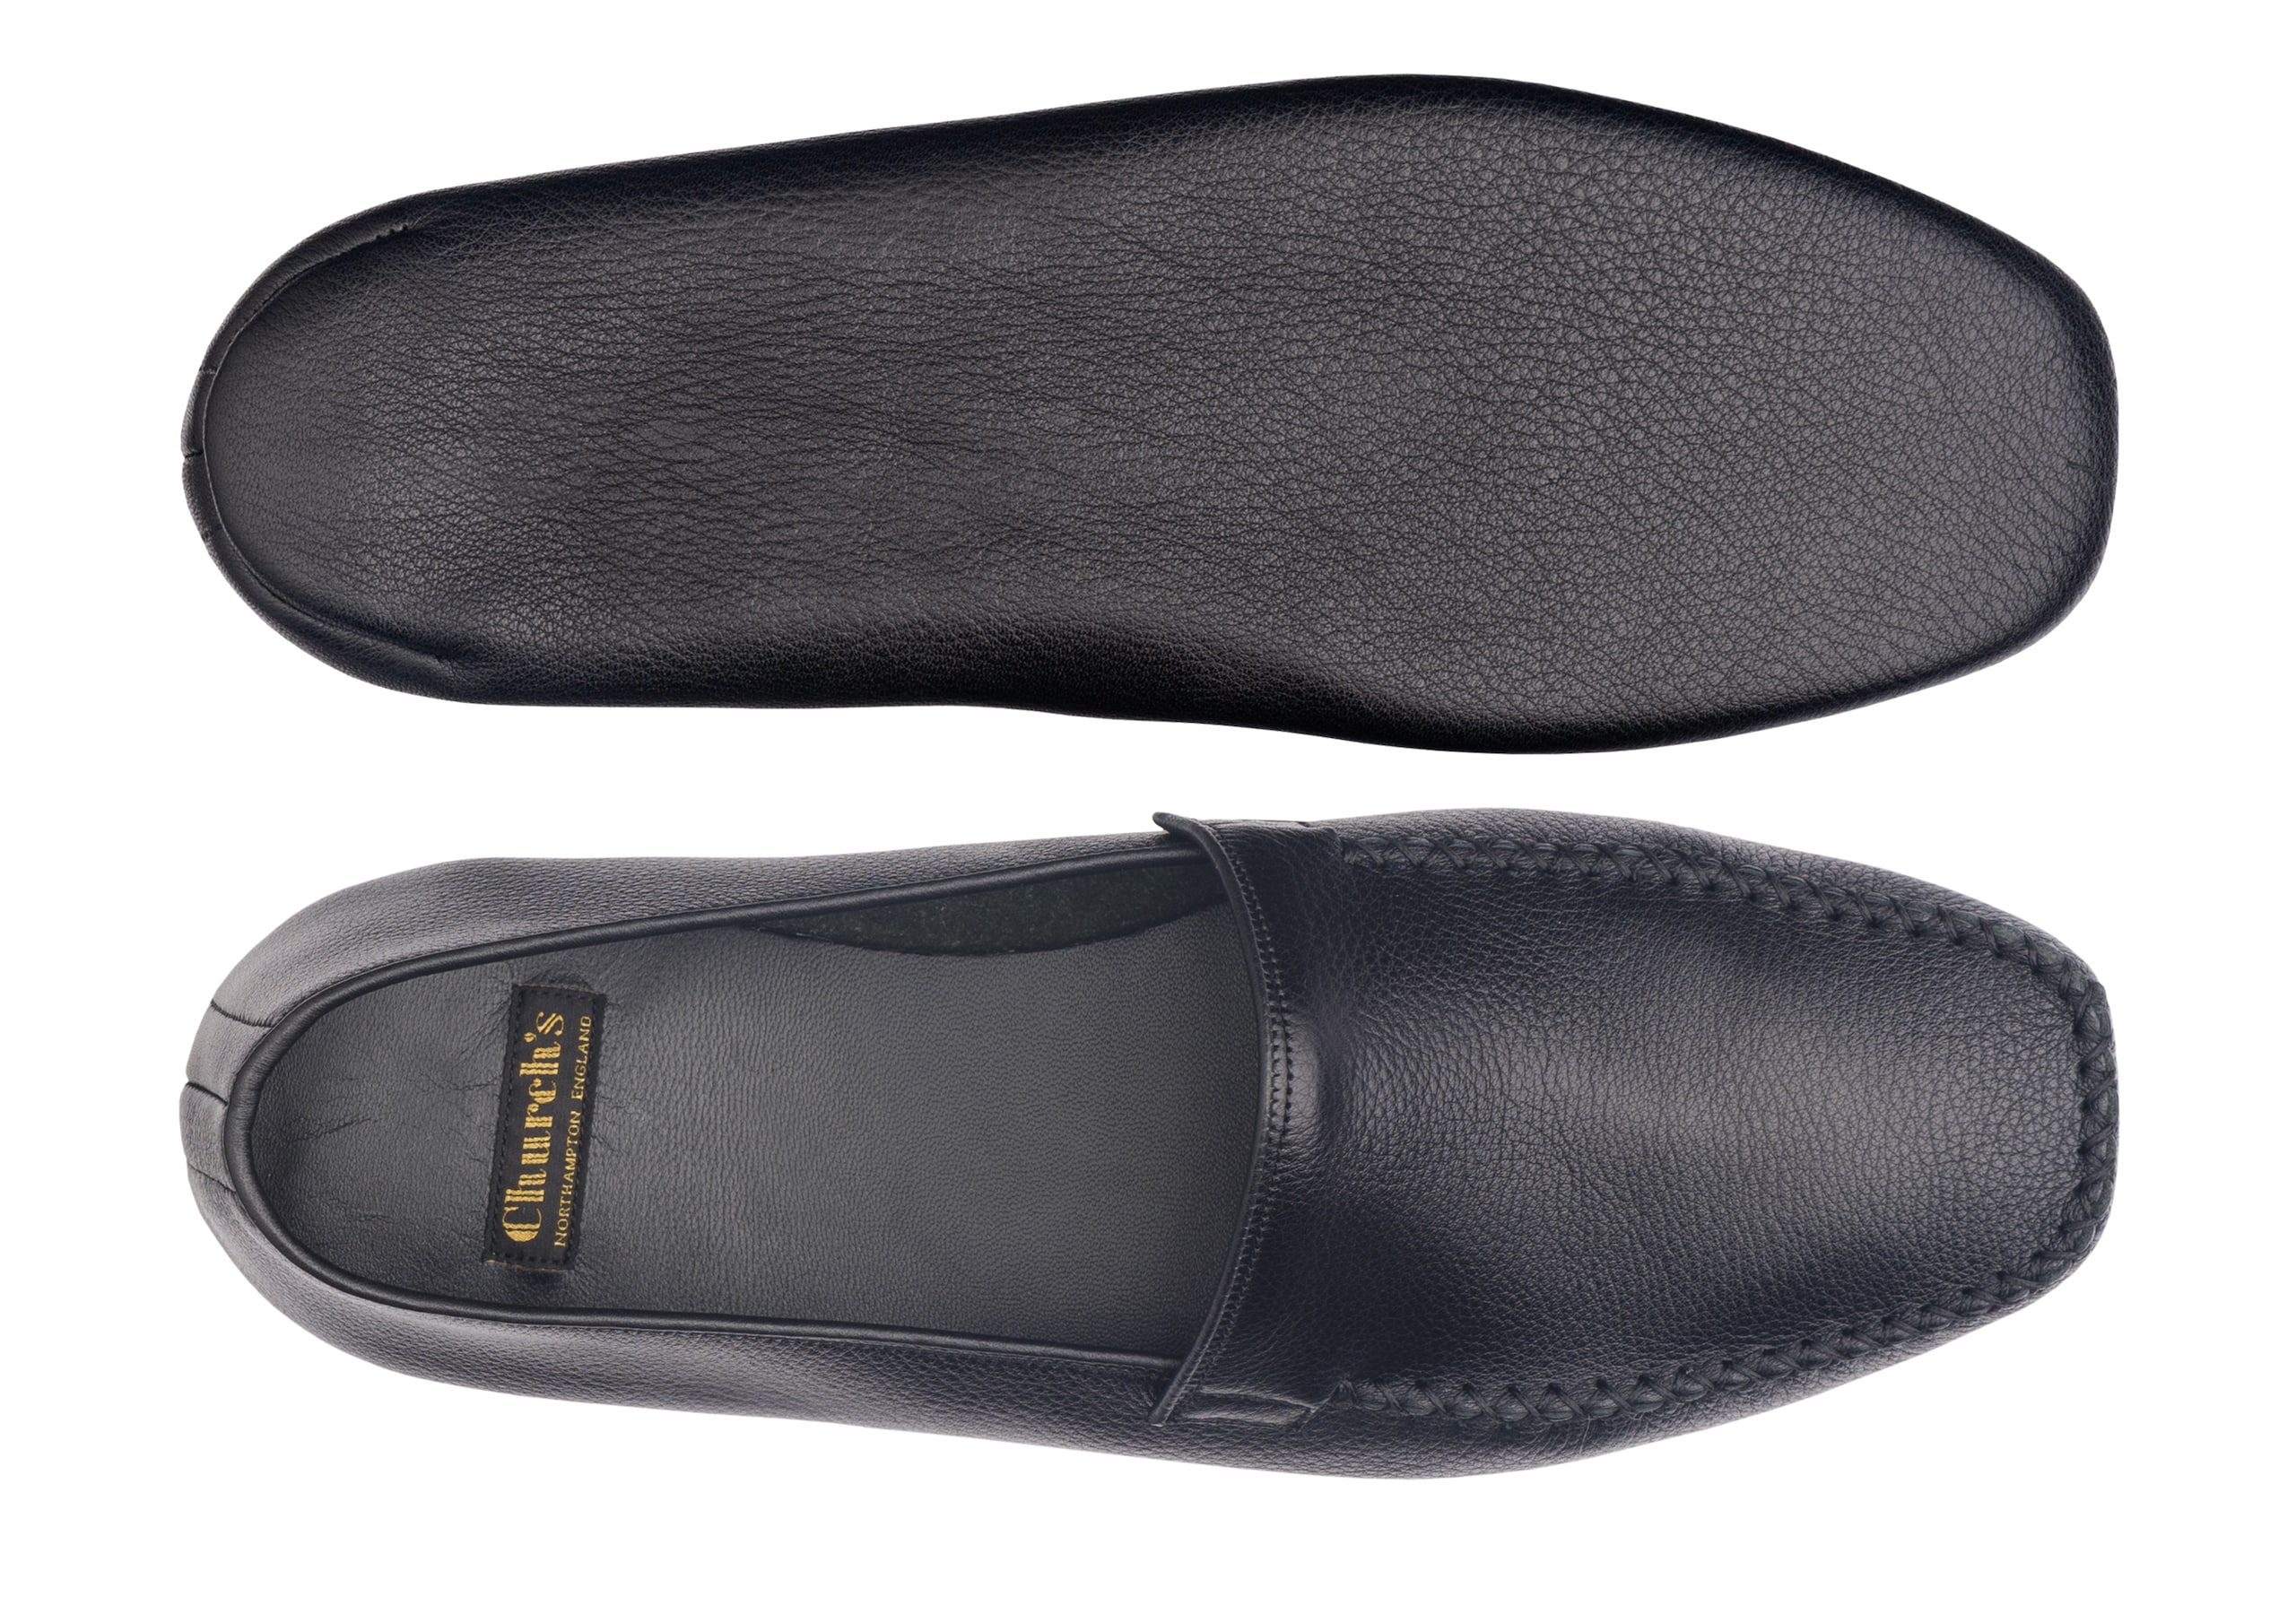 Limos 4 Church's Daino Leather Grecian Slipper Black